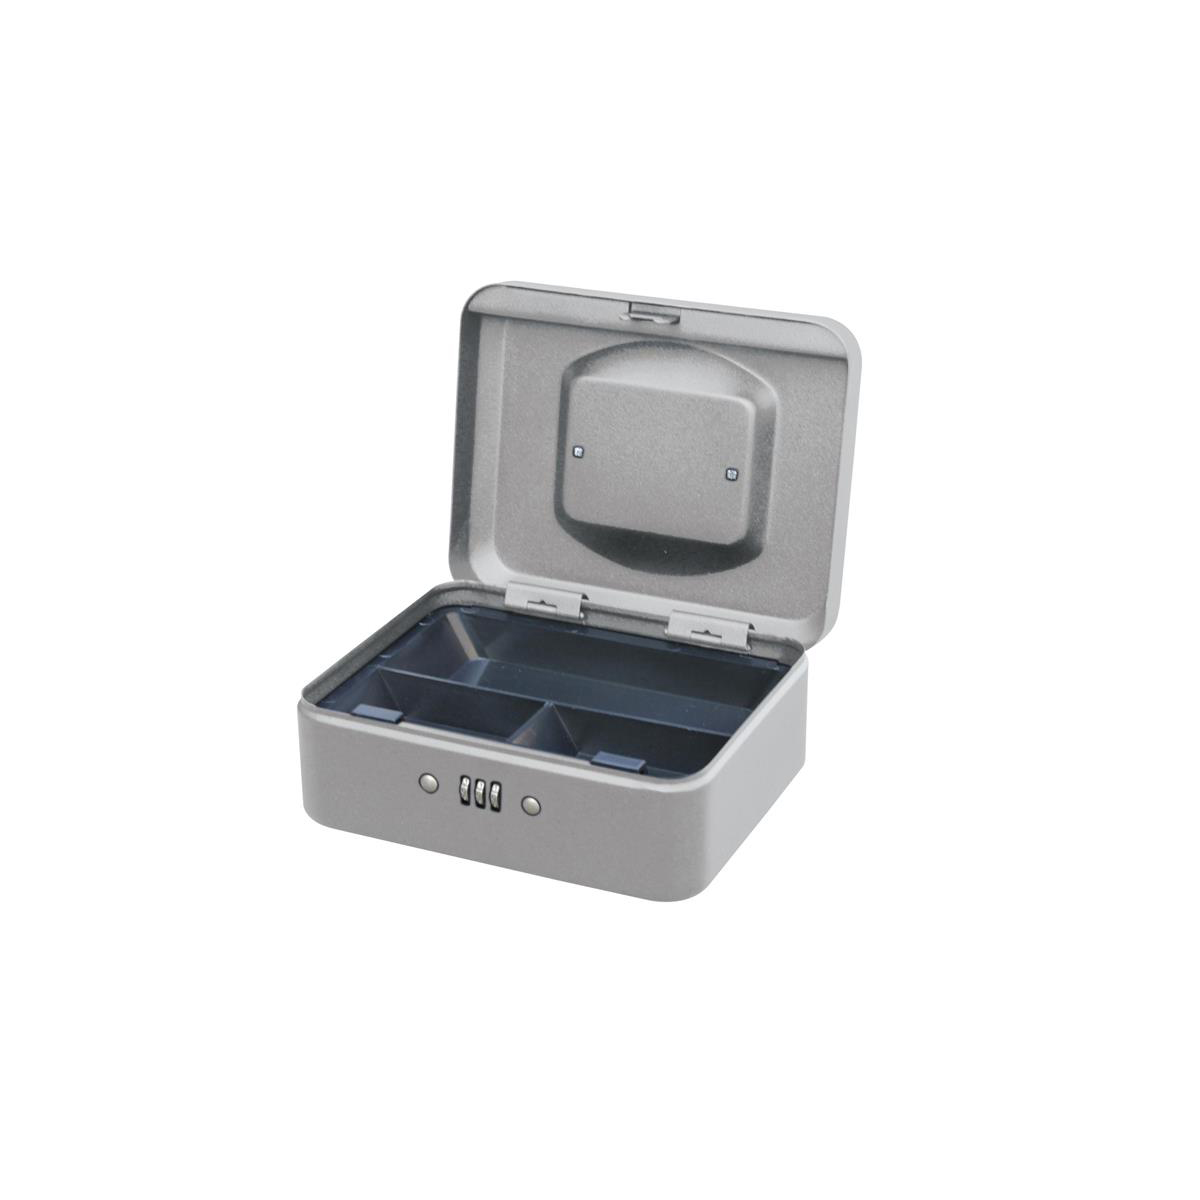 Cash 5 Star Facilities Premium Cash Box with Coin Tray Metal Combination Lock W200xD160xH90mm Grey